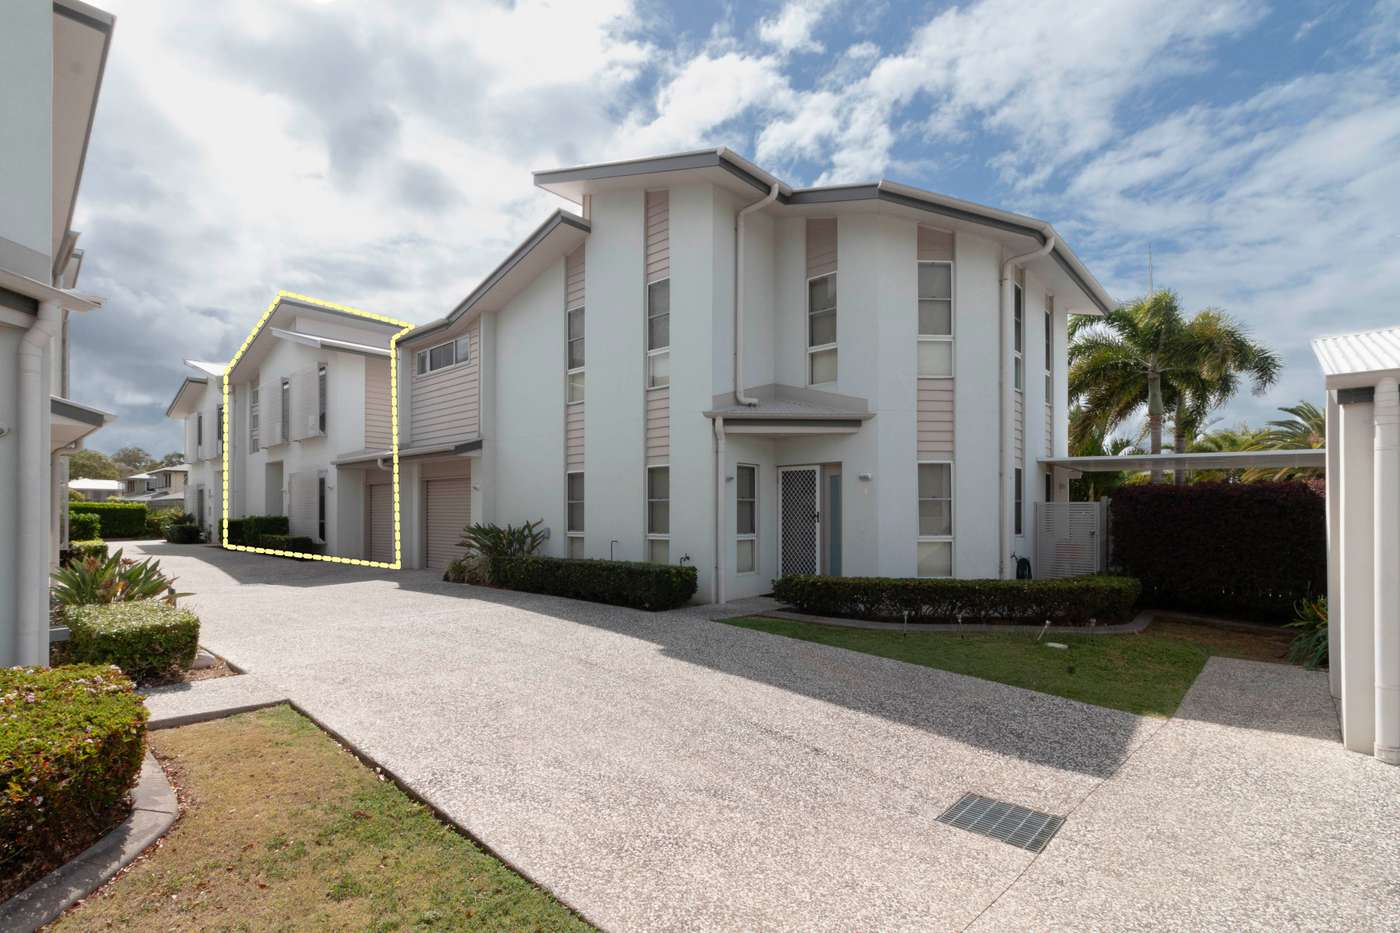 Main view of Homely townhouse listing, 2 / 31 STEPHENSON STREET, Pialba, QLD 4655